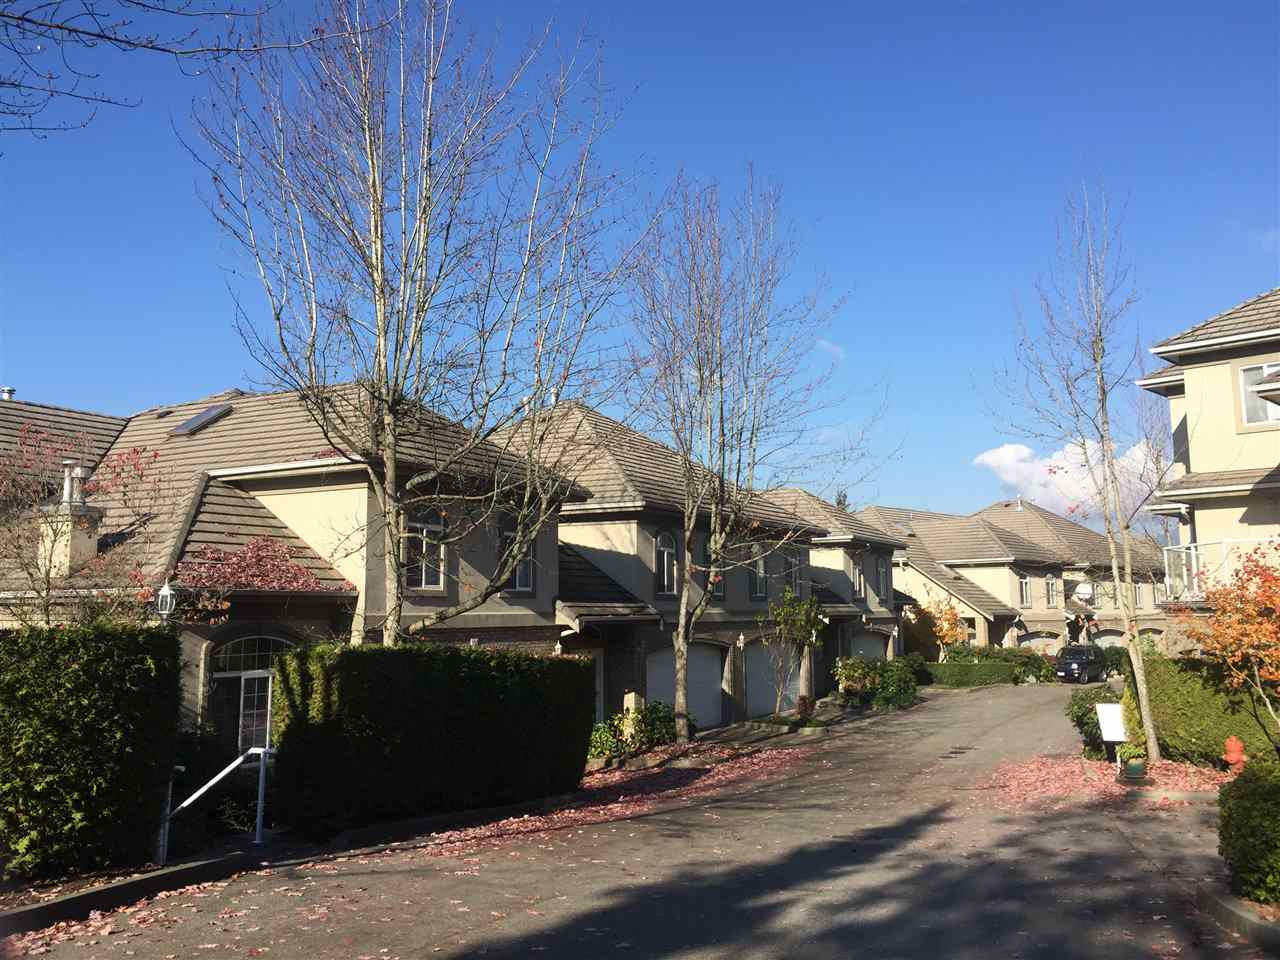 """Britanny Place in Citadel- is an executive gated 15 unit complex , tucked away and very private. Ceramic tiled entry, 9 ft ceilings. Formal living has tall elegant windows, hardwood flooring. Bright kitchen with lots of white cabinets and caving area with access to a great deck with view. Upstairs has huge decadent master with oversized walk-in closet, double sided gas fireplace, sitting area, soaker tub and separate shower/toile, marble floors. Other bedroom has an ensuite. DOWN-media room and bedroom plus bathroom, View from all 3 levels. Over 3,000 sq IL Treat yourself to the best!"